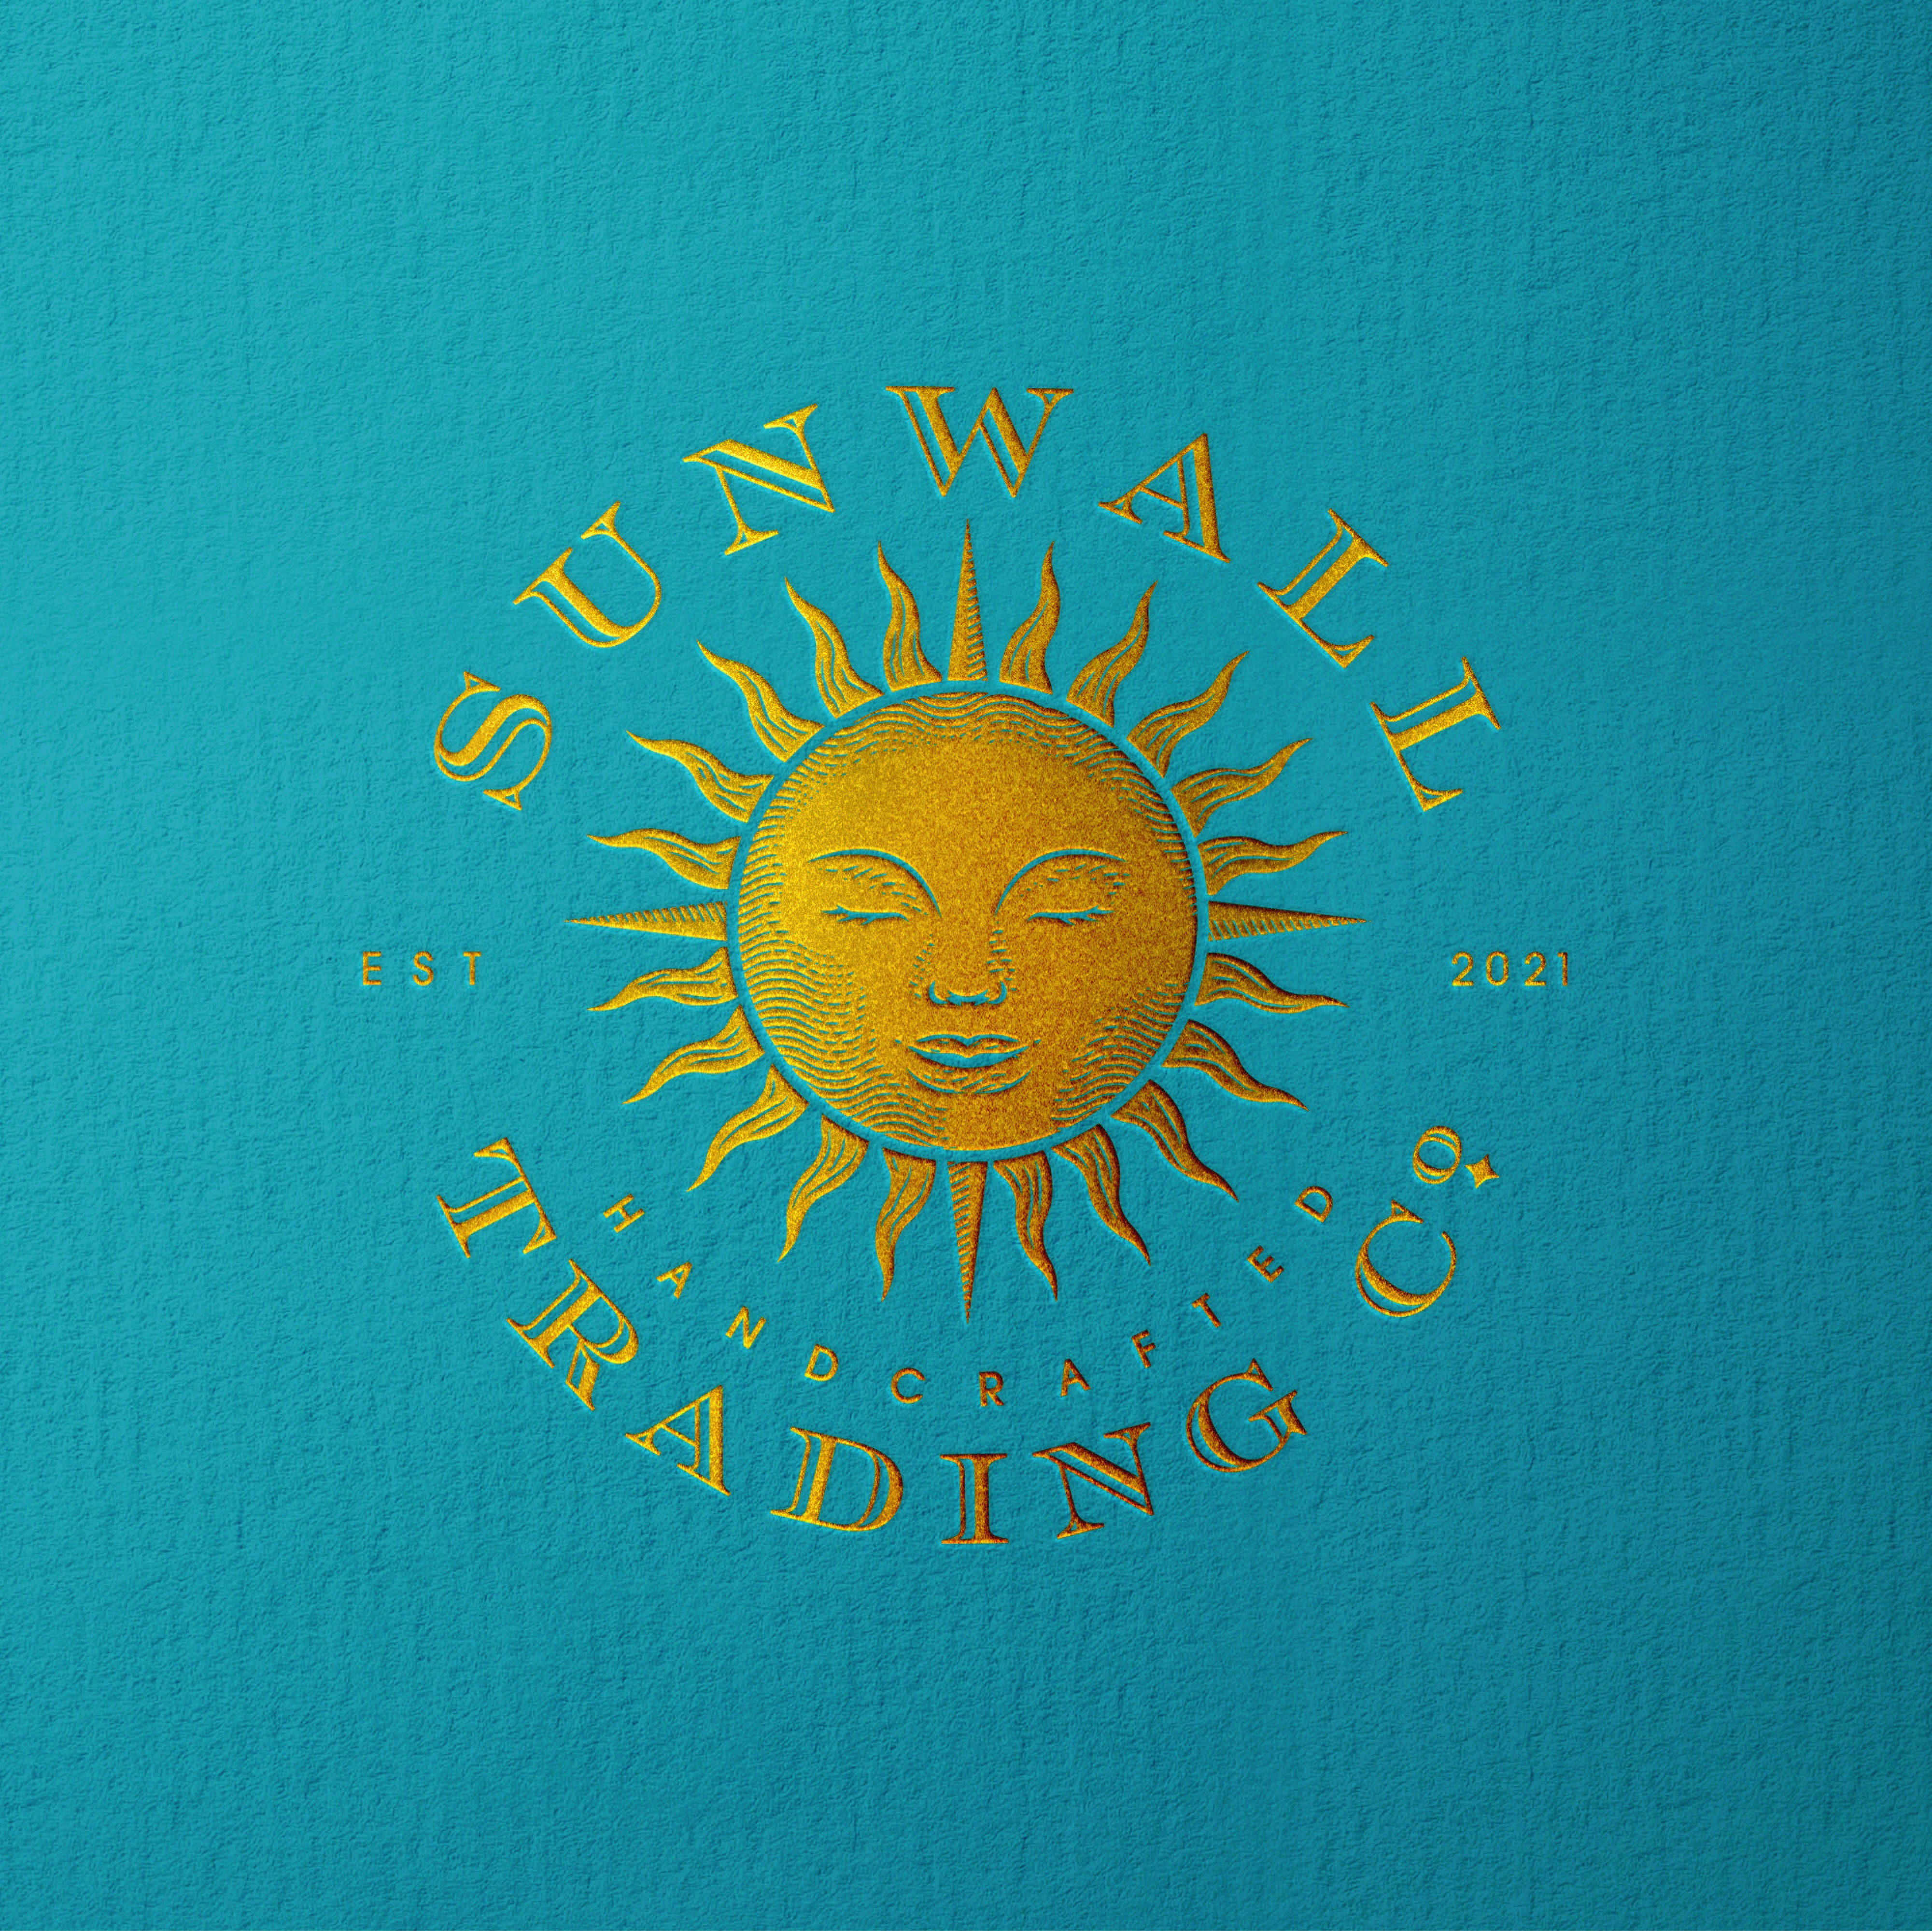 Hatching/stippling style sun logo... let's create an awesome vintage-luxury logo!